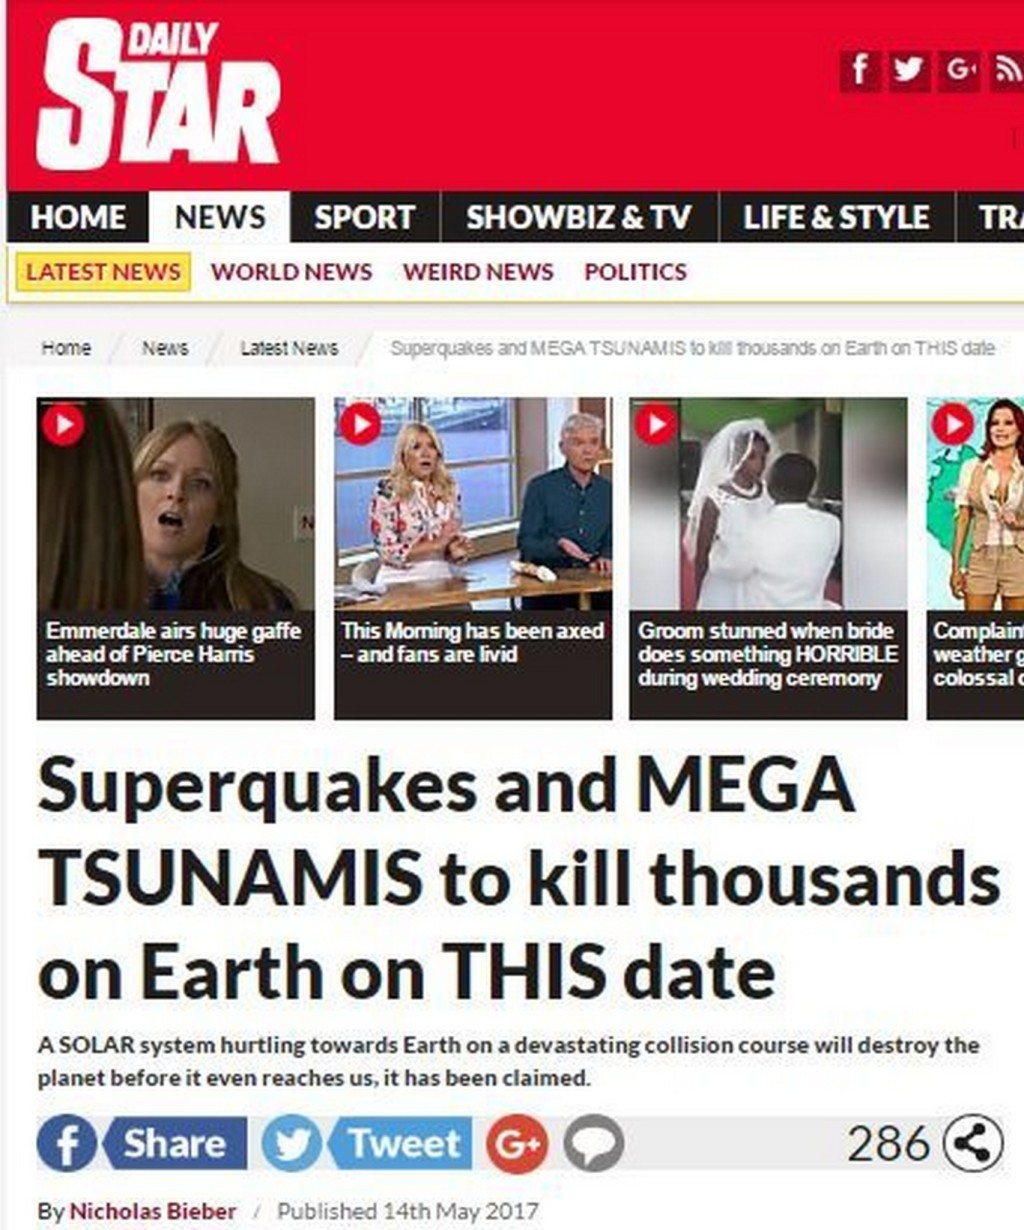 dailystar 15190555 pagespeed ce UL4ObMcHi